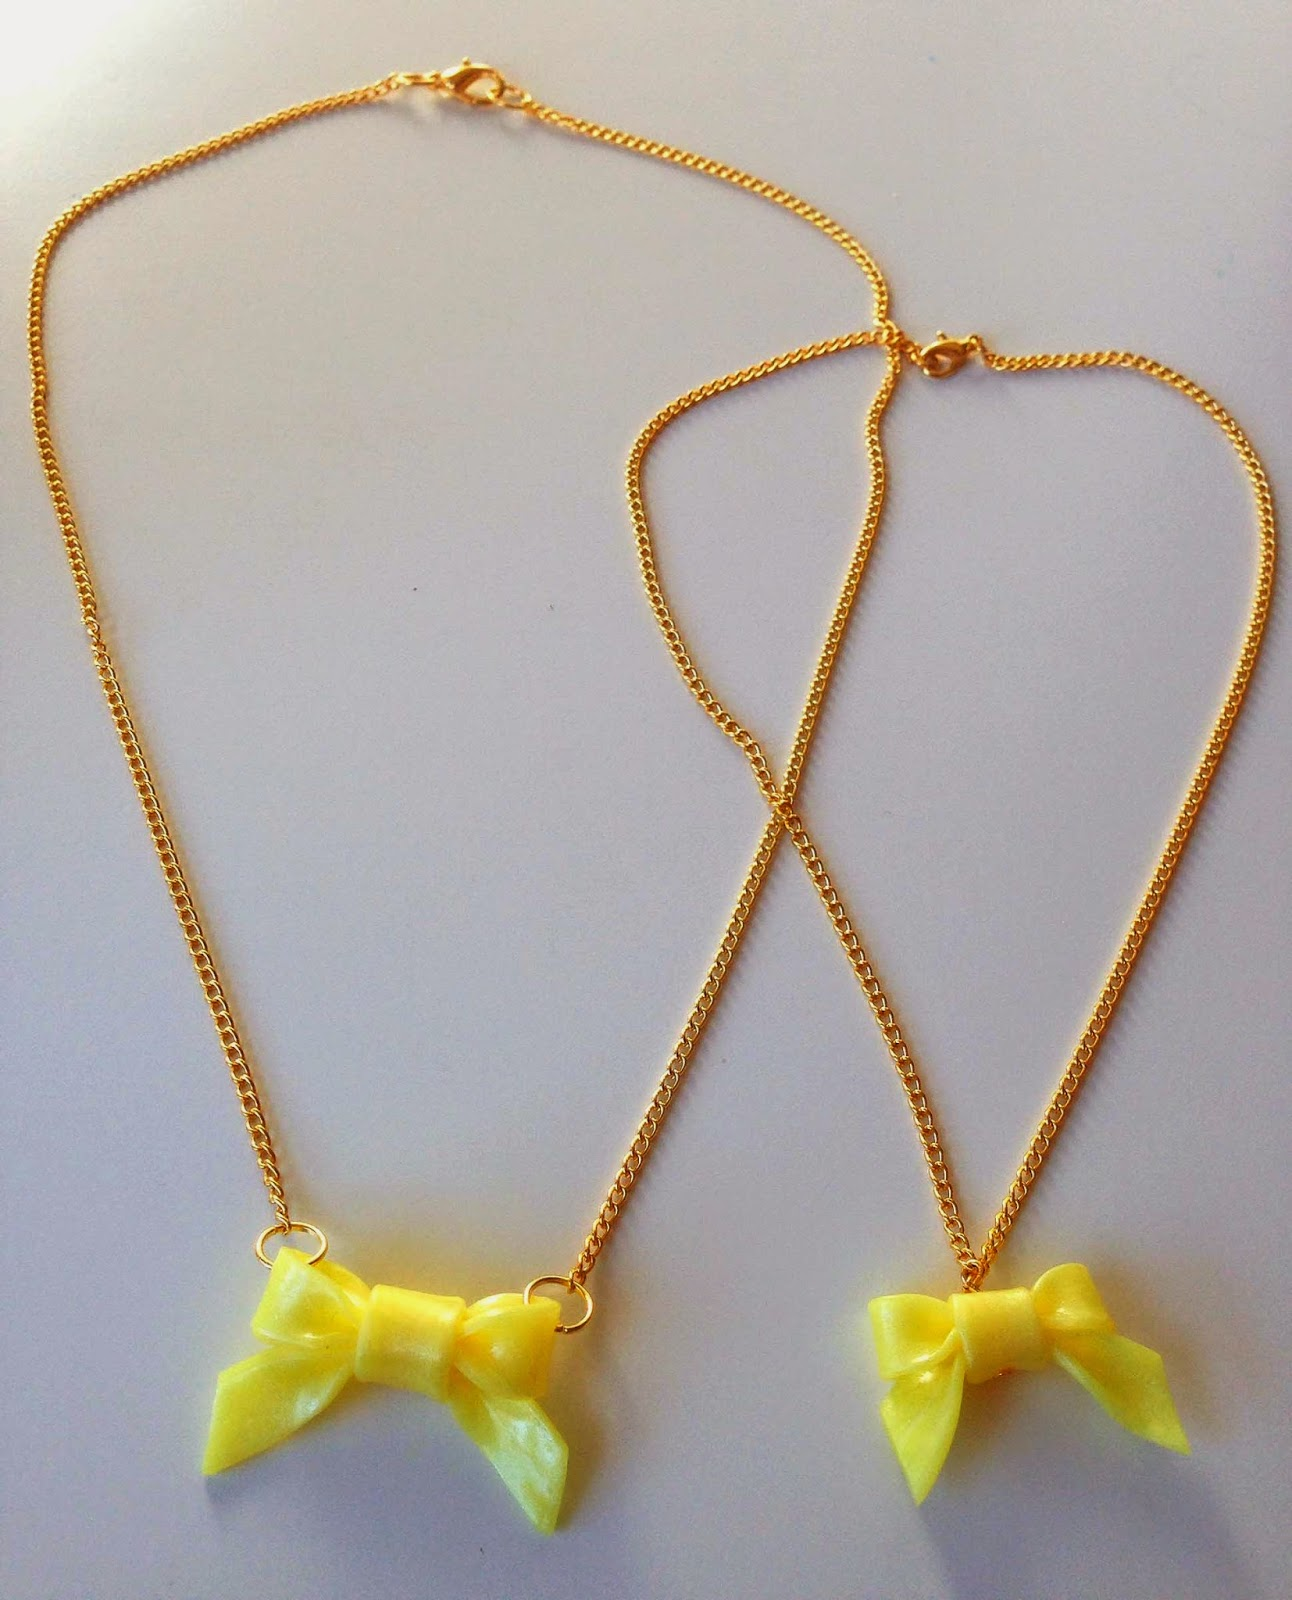 "Collar/Necklace Lazo amarillo: NM Designs ""Me & mini Me"""